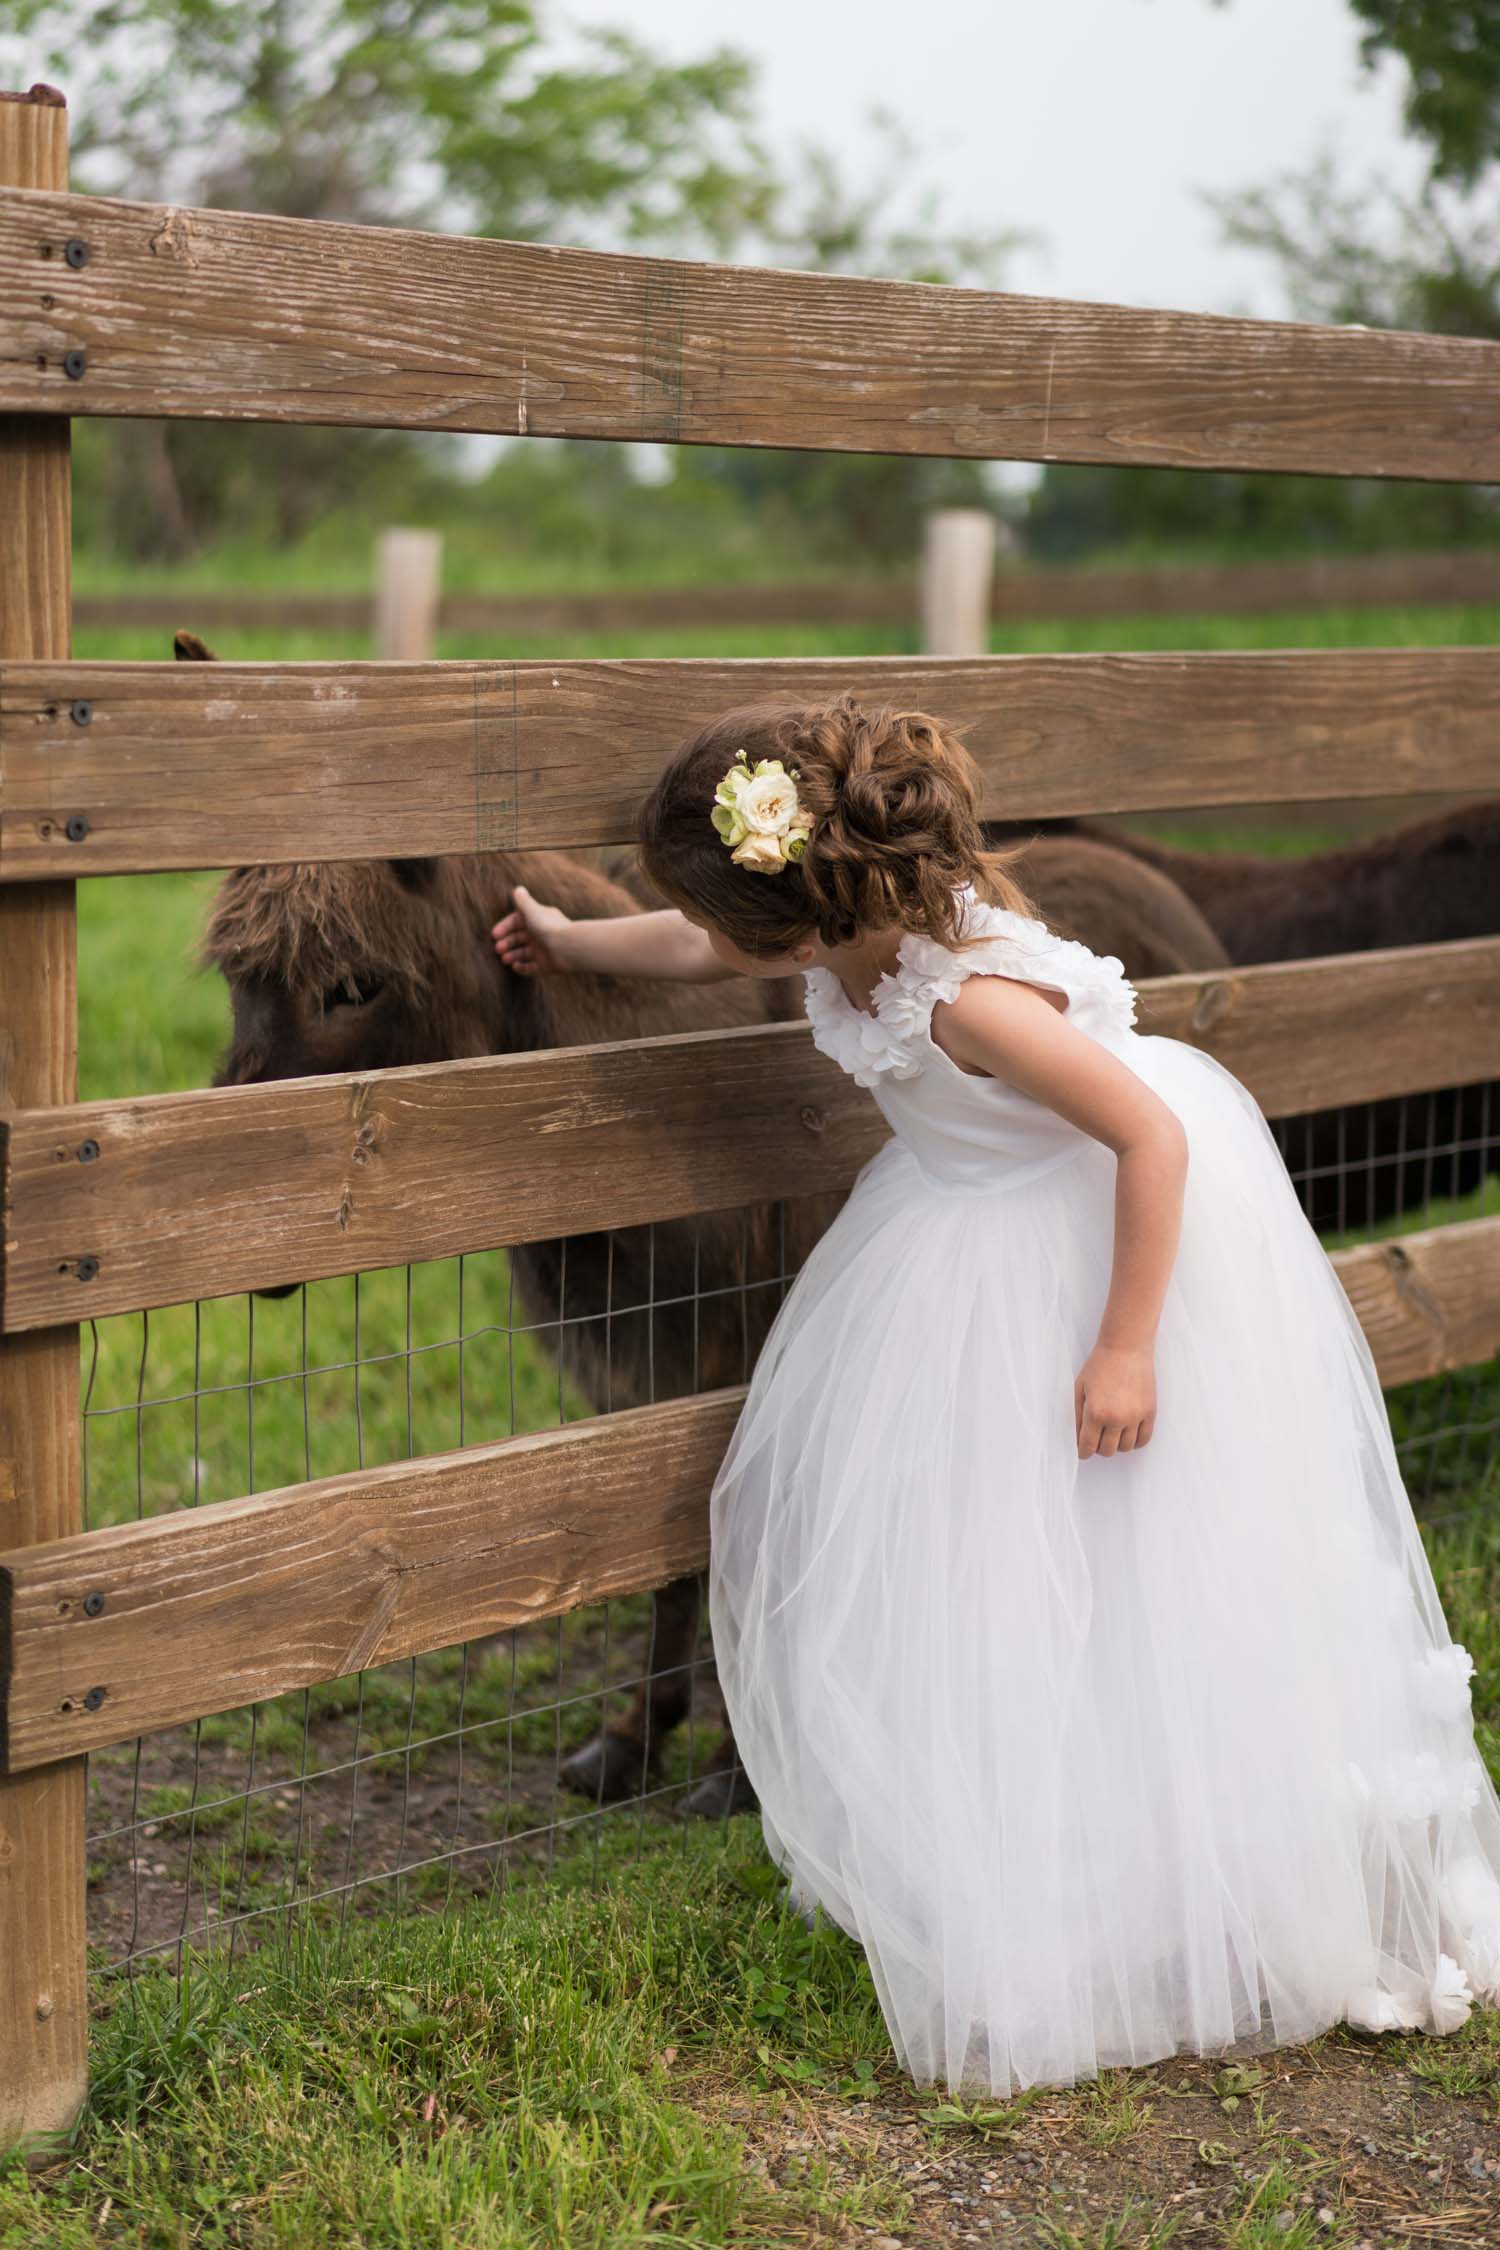 flower girl with donkey